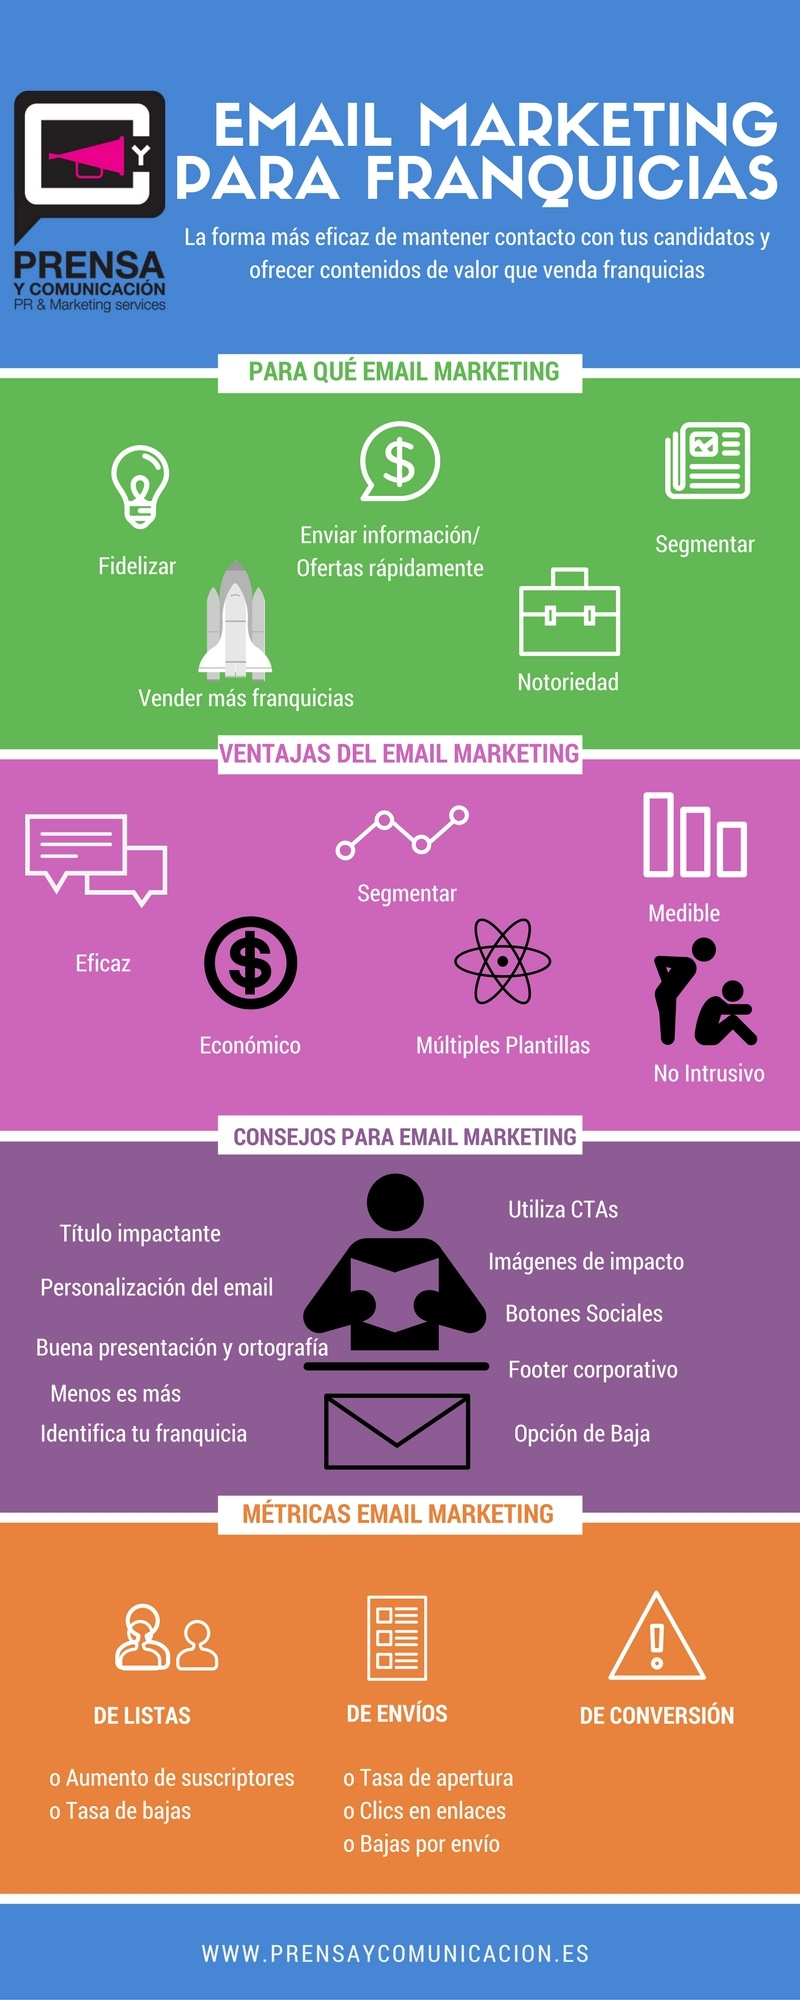 eMail marketing para franquicias